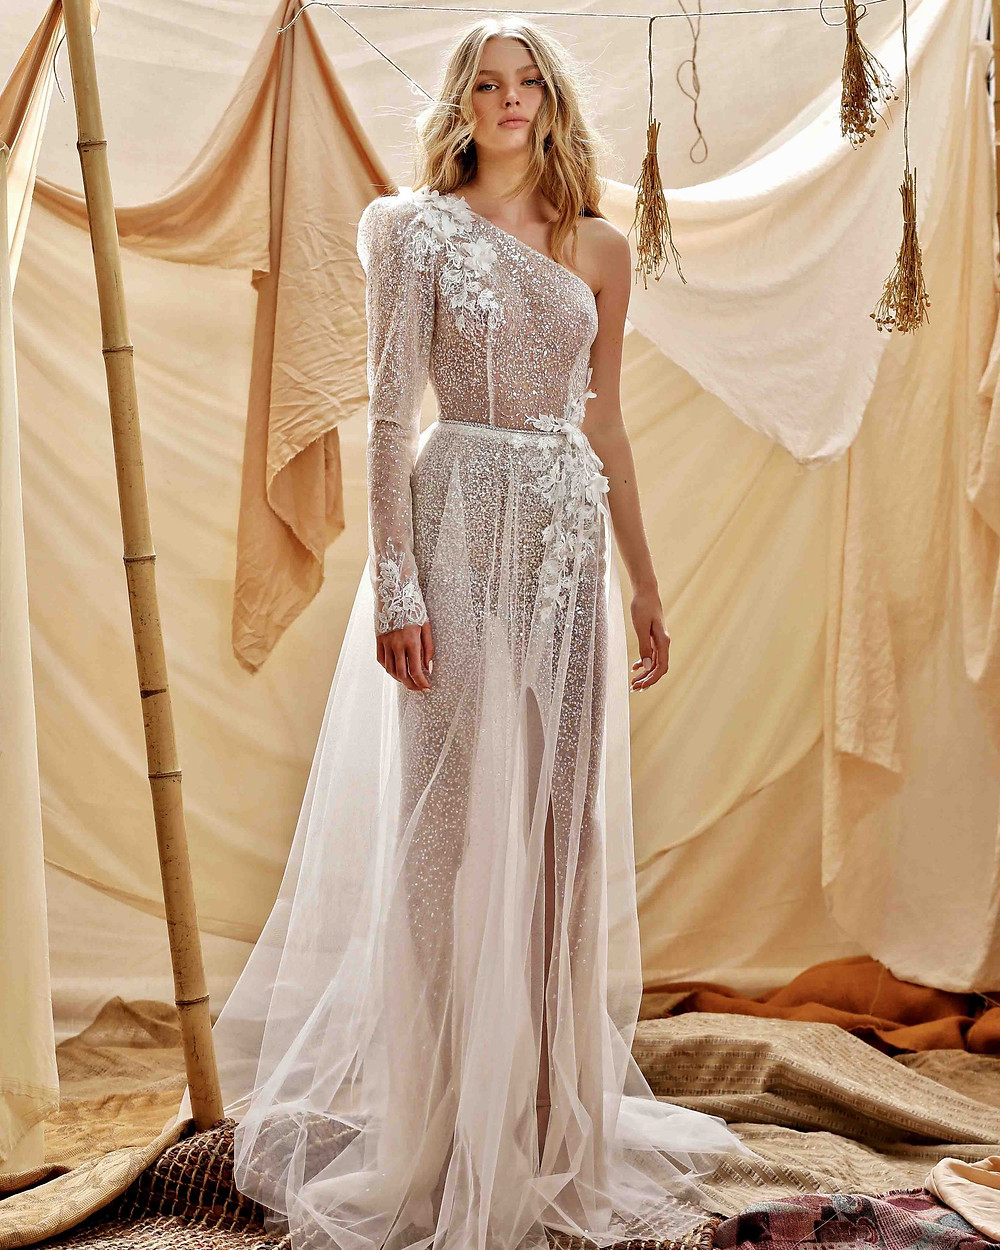 A Berta 2021 soft, flowy, one shoulder wedding dress with flowers and sparkles